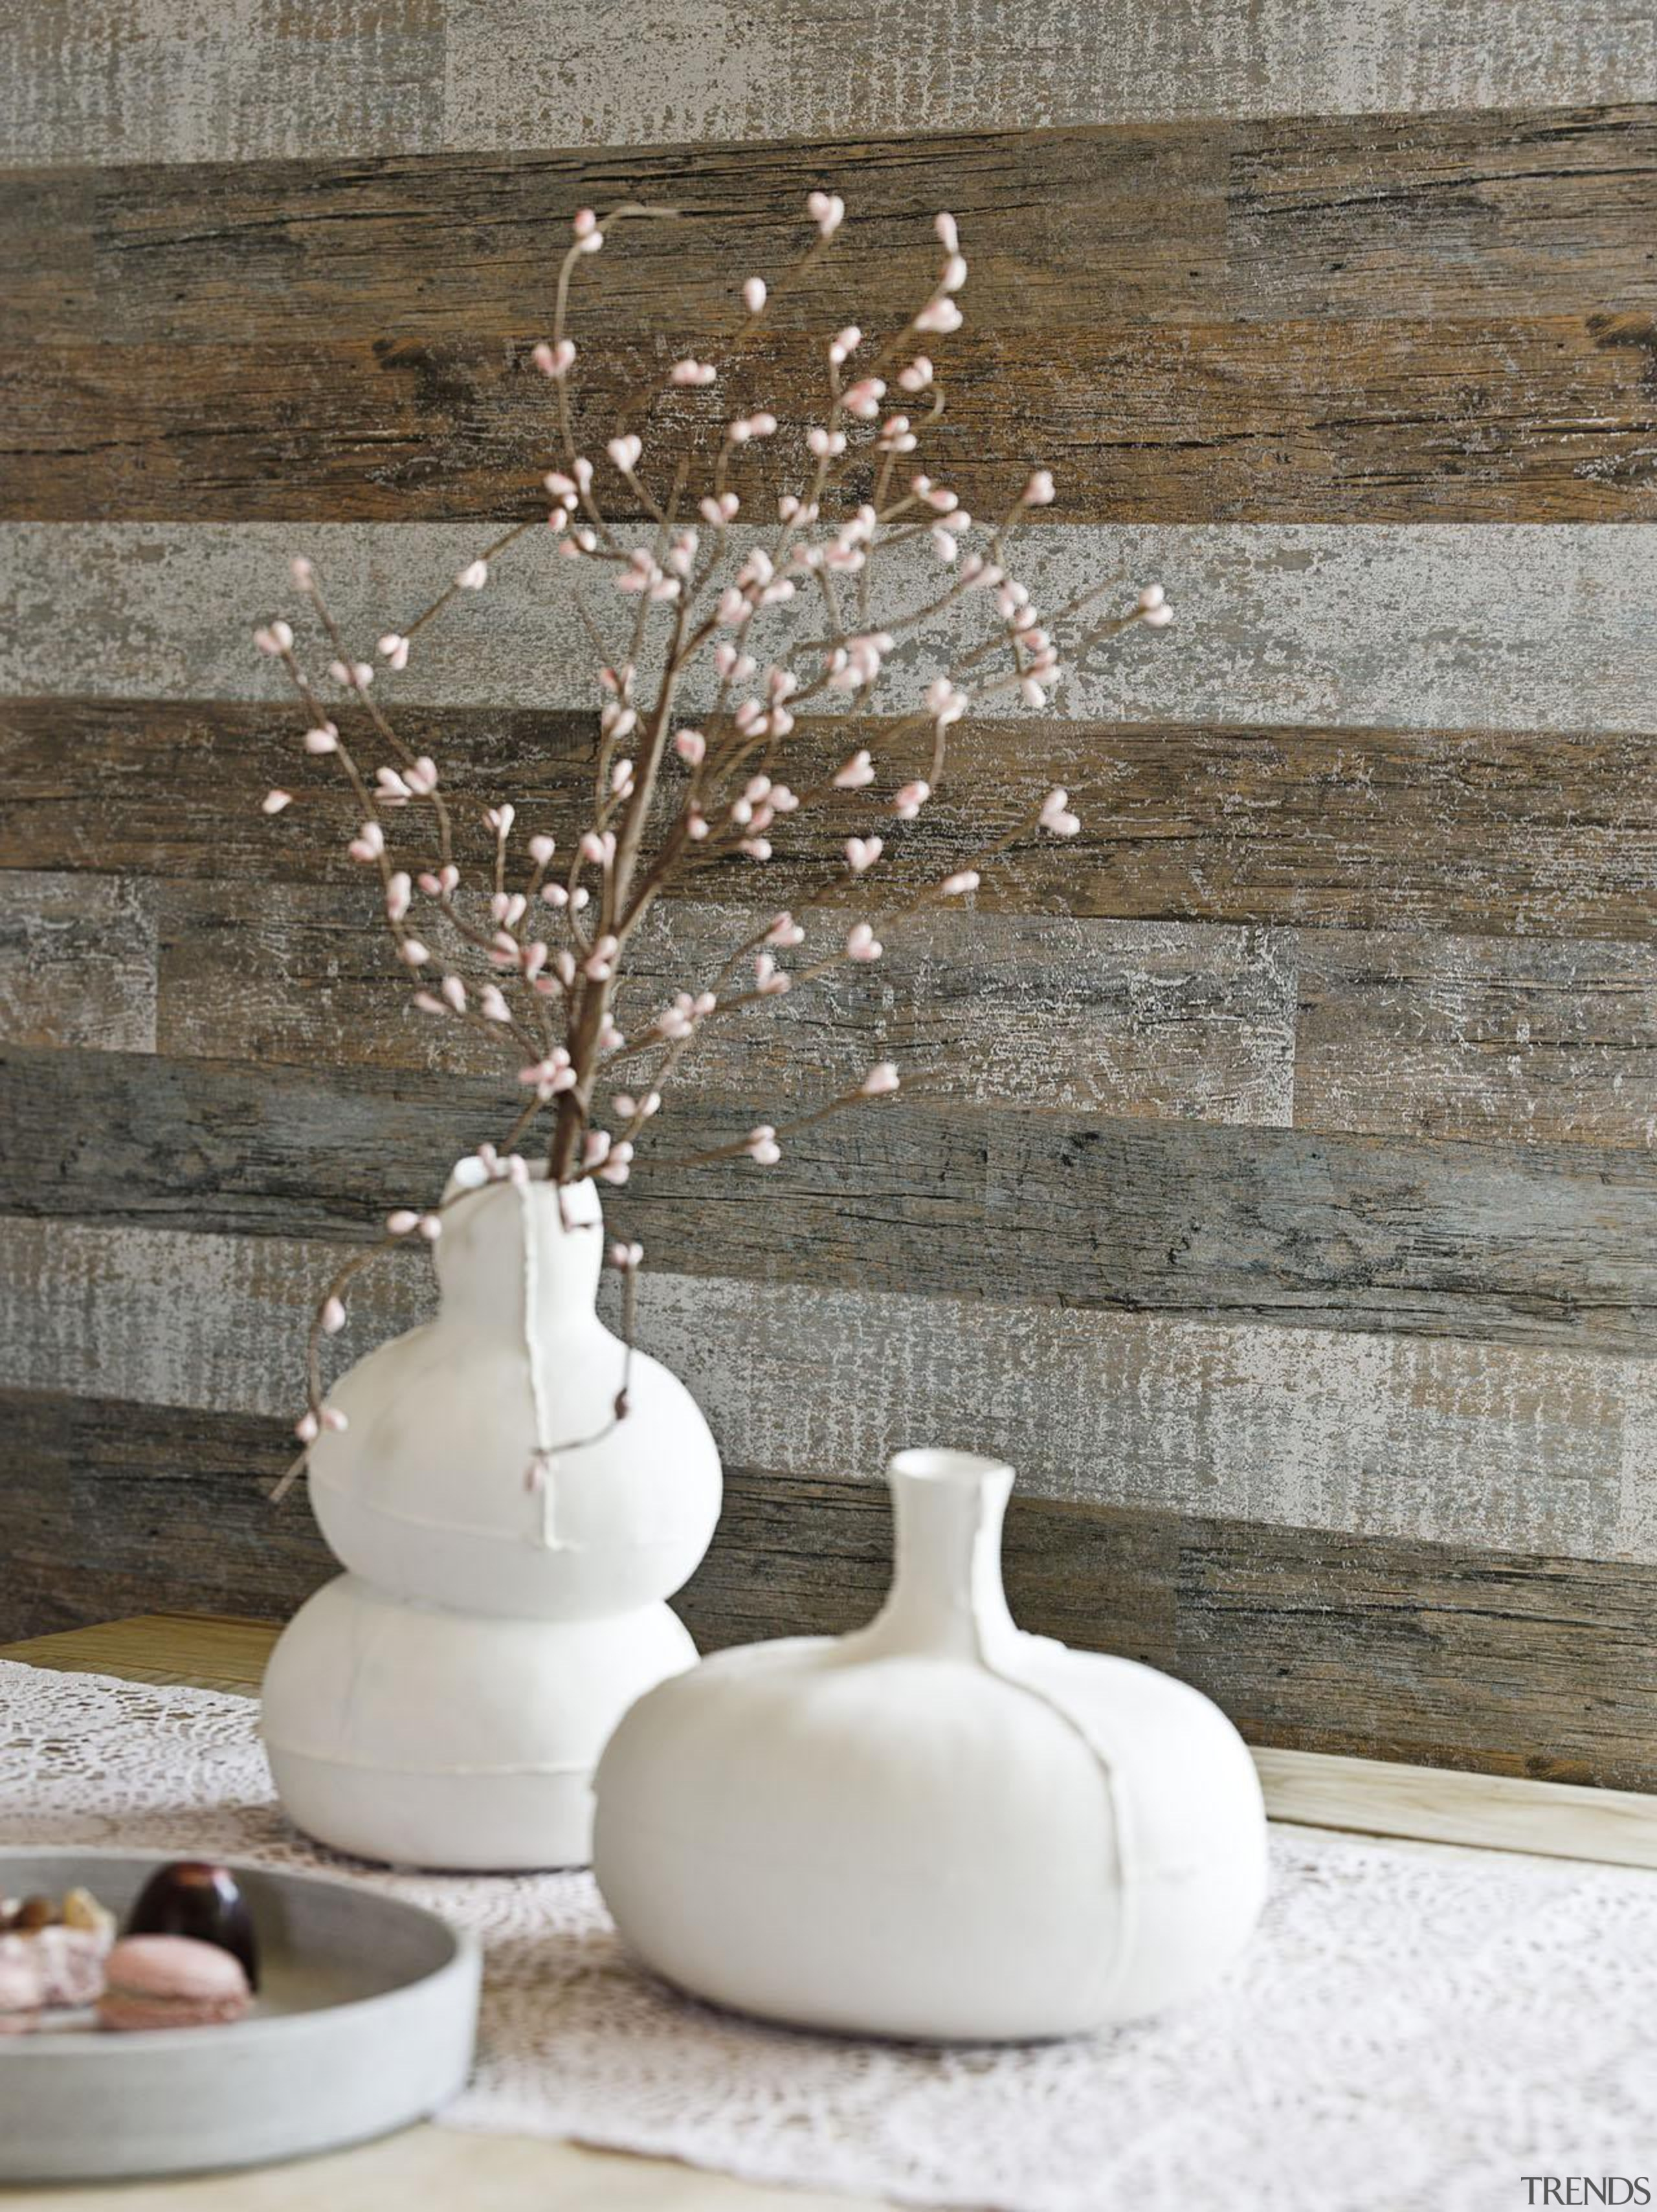 Elements Range - Elements Range - branch | branch, ceramic, flowerpot, porcelain, serveware, still life photography, vase, gray